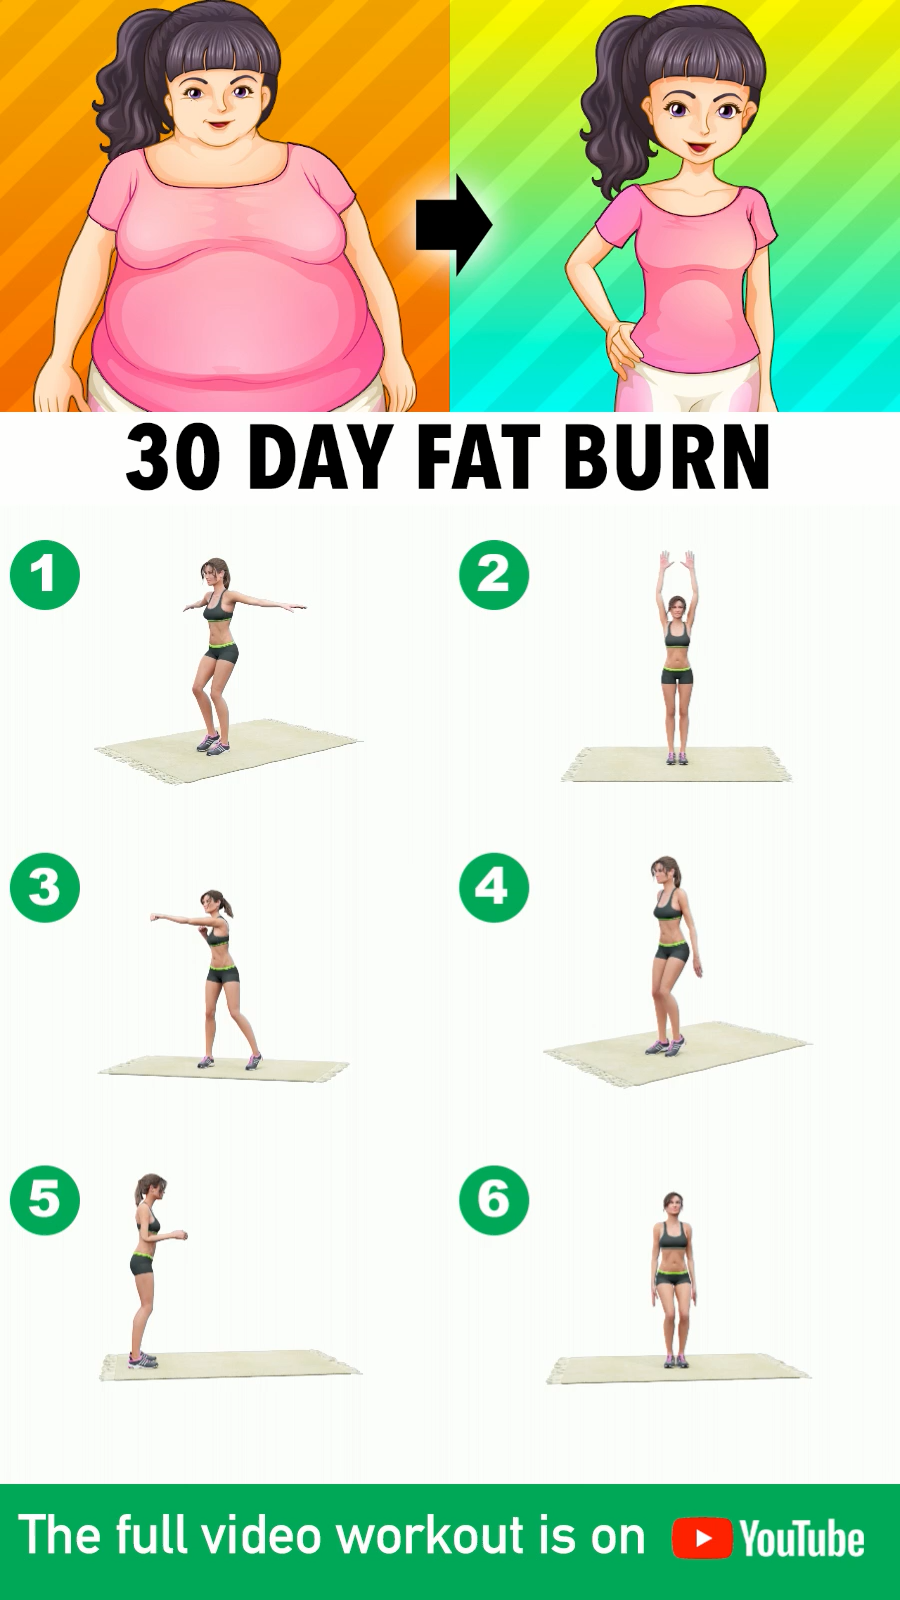 30-Day Fat Burn At Home: Top Weight Loss Exercises